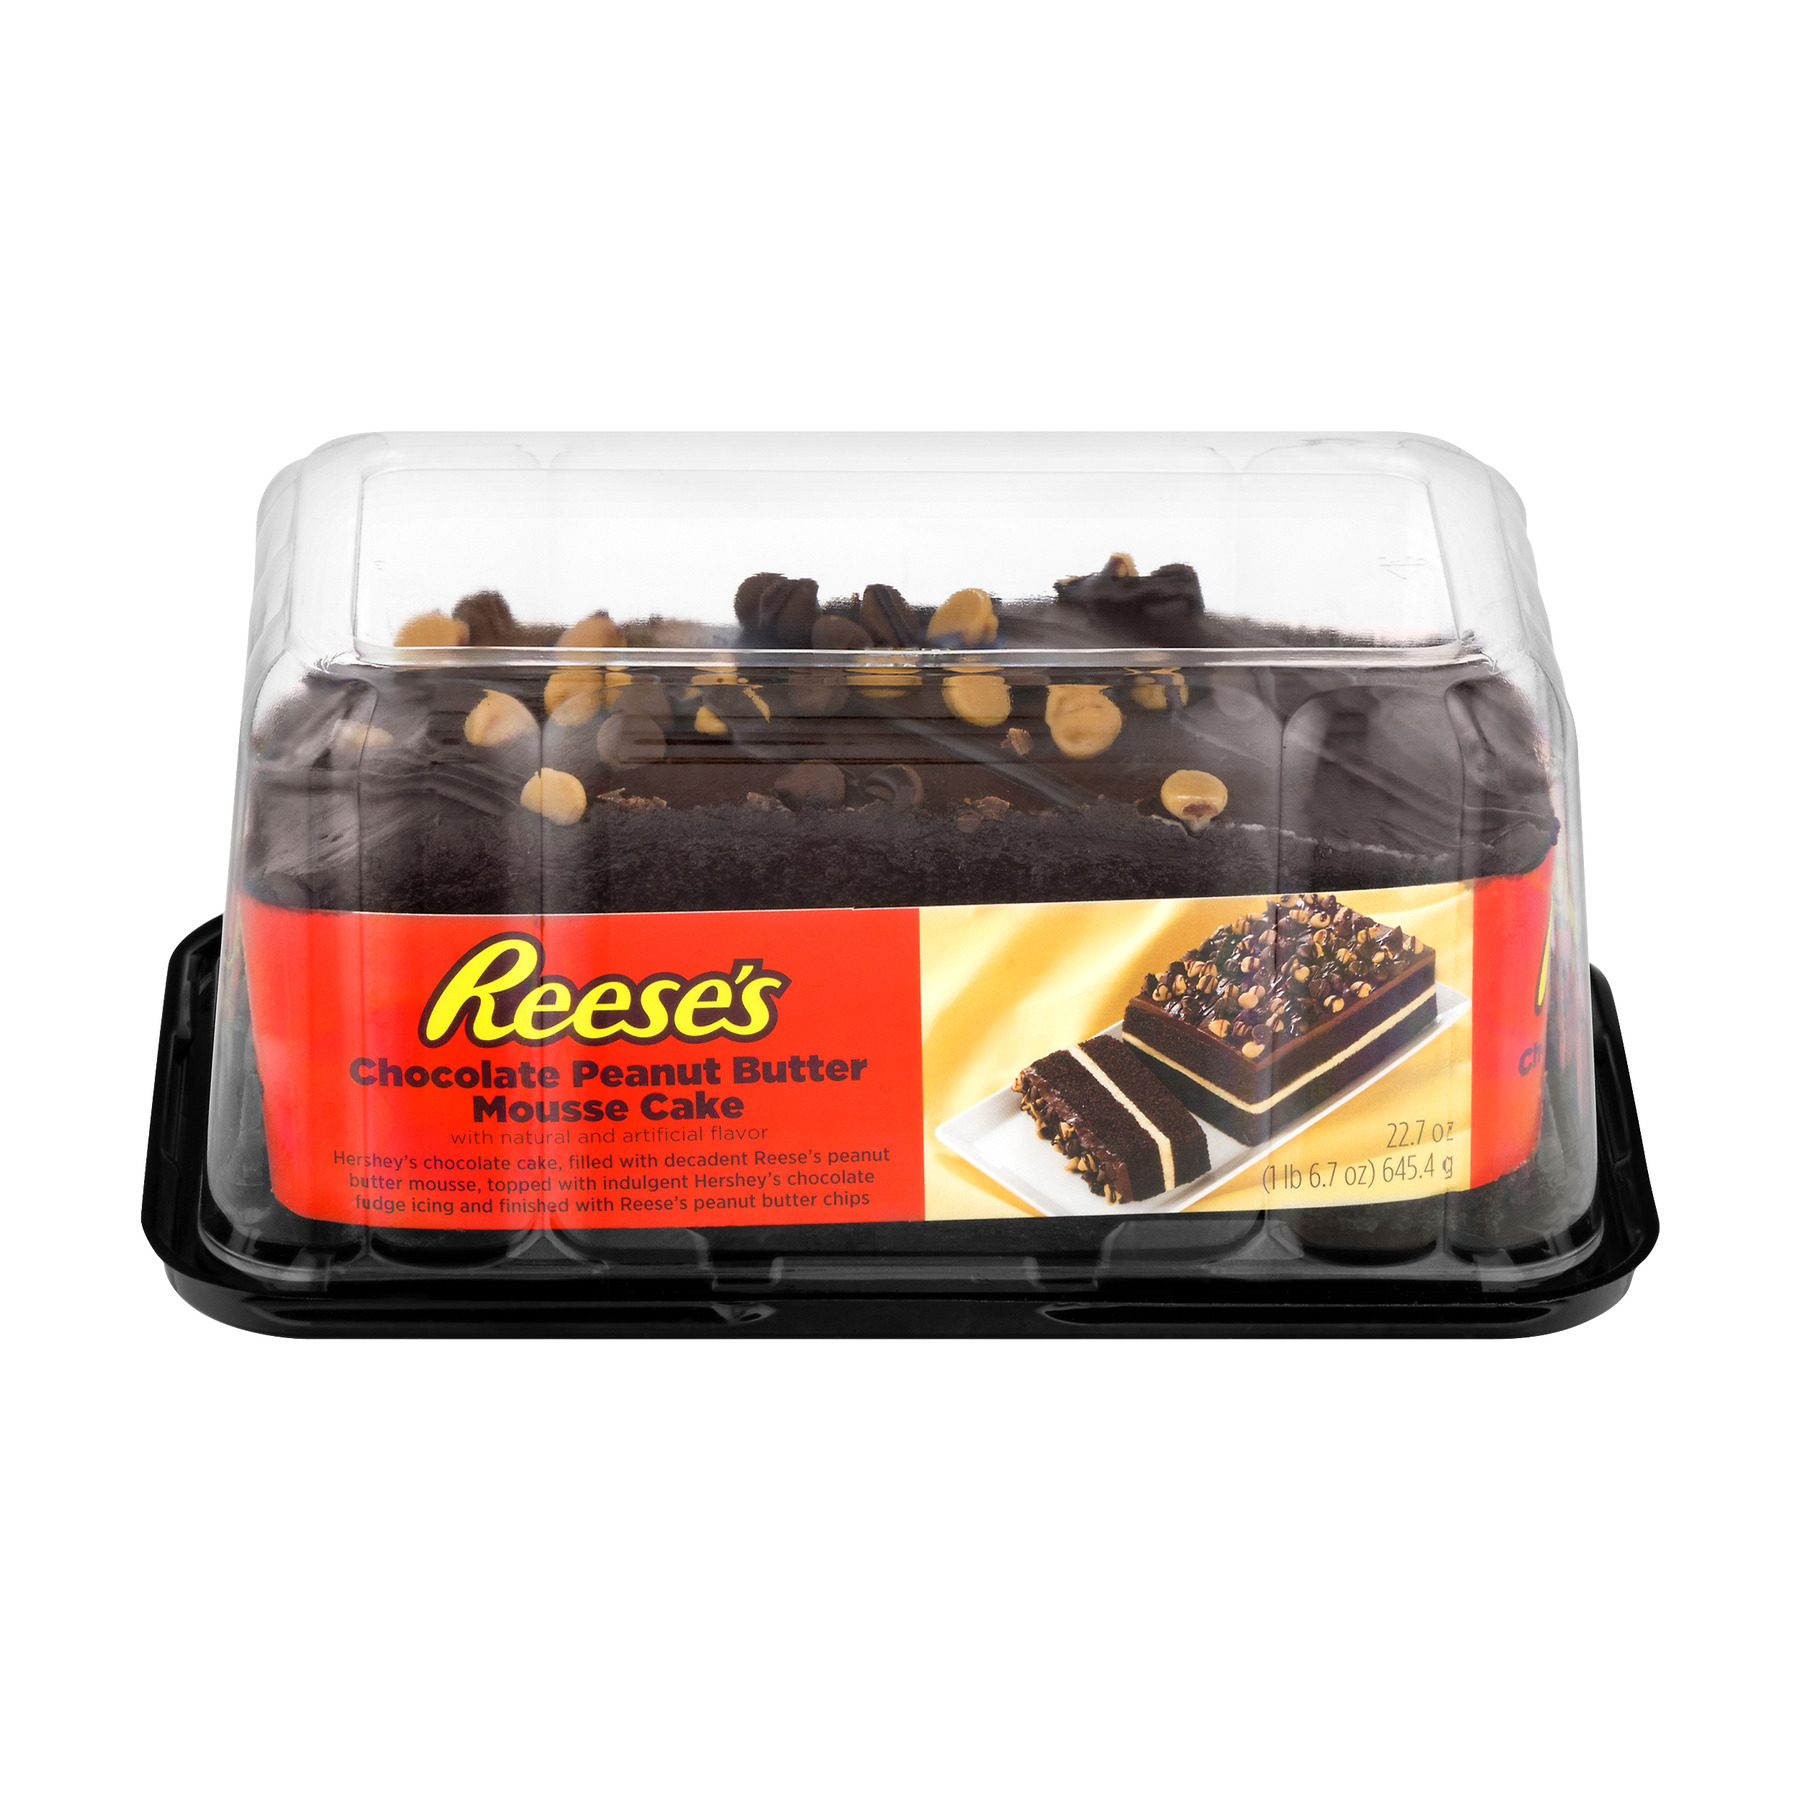 Reese's Chocolate Peanut Butter Mousse Cake, 22.7 OZ